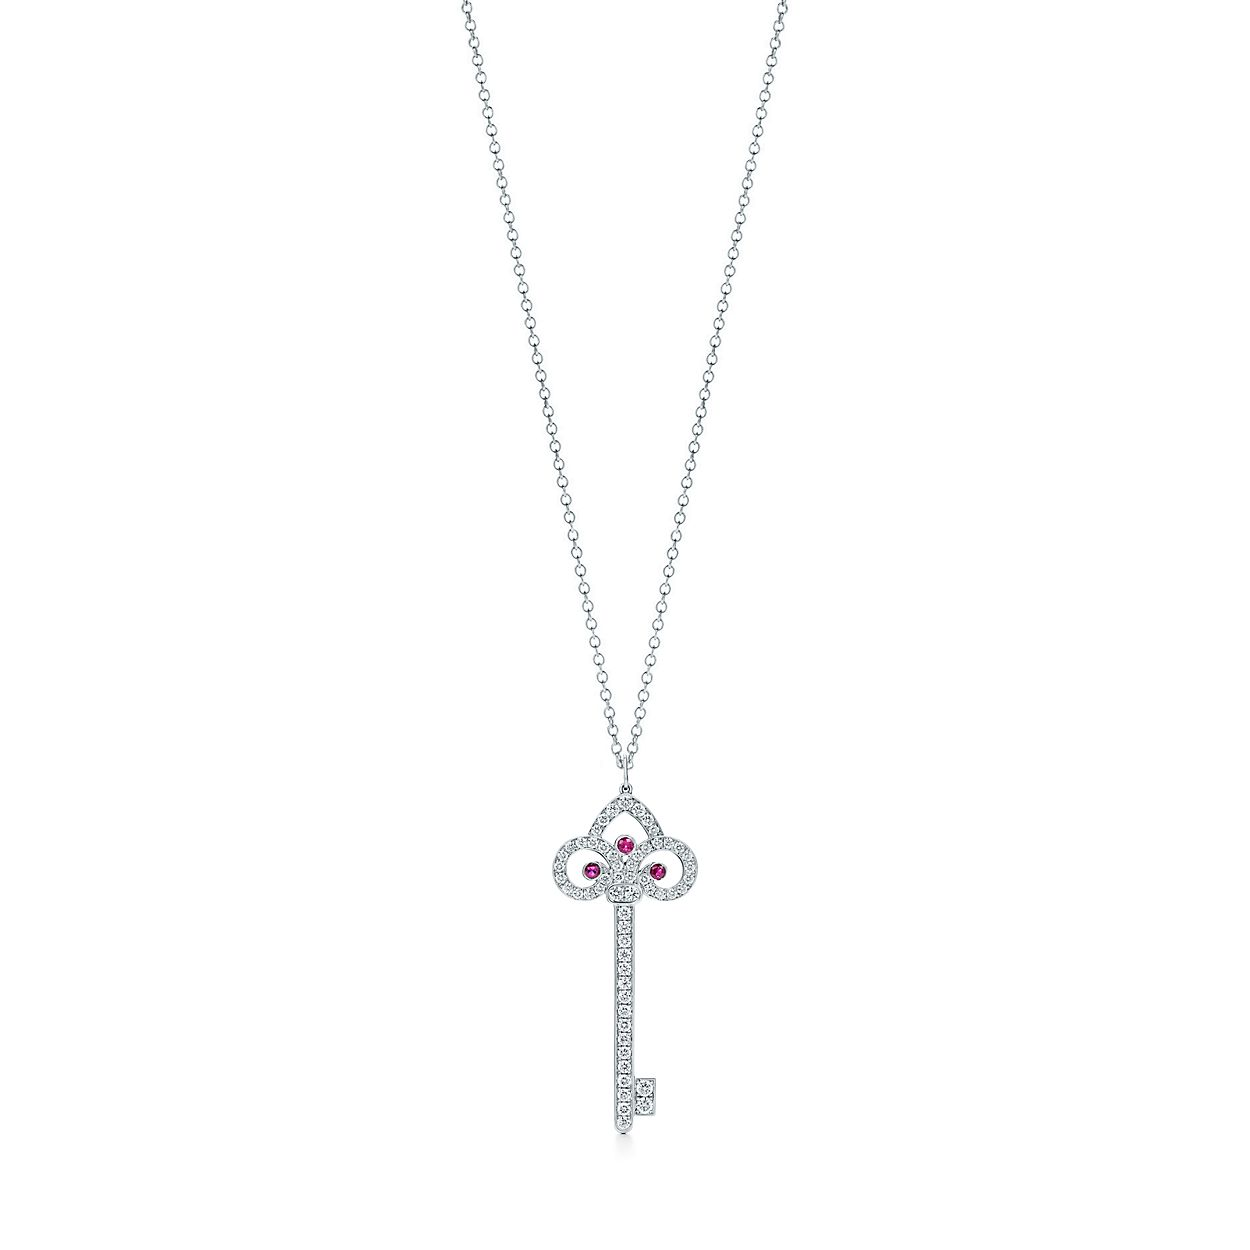 Tiffany keys tiffany fleur de lis key pendant in platinum with tiffany keystiffany fleur de lisbrkey pendant aloadofball Images